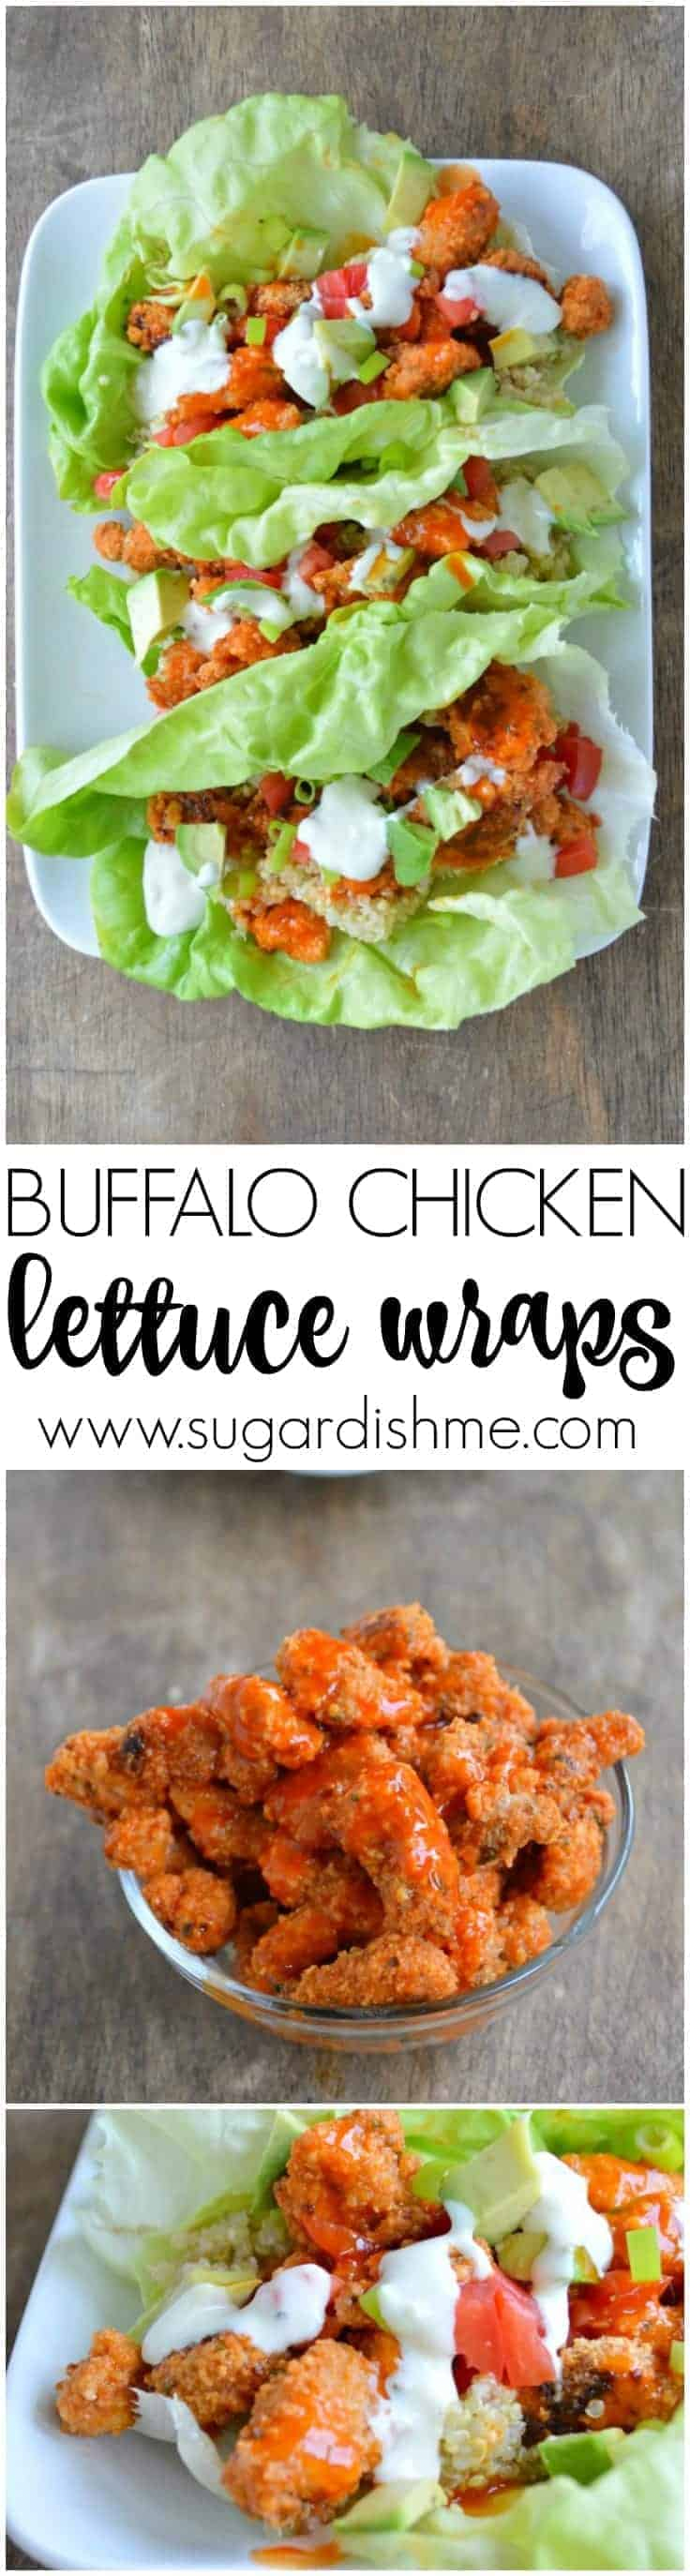 Buffalo Chicken Lettuce Wraps are fast, fresh, and healthy! This easy recipe has been featured on many healthy living sites, and has been #1 since 2014!